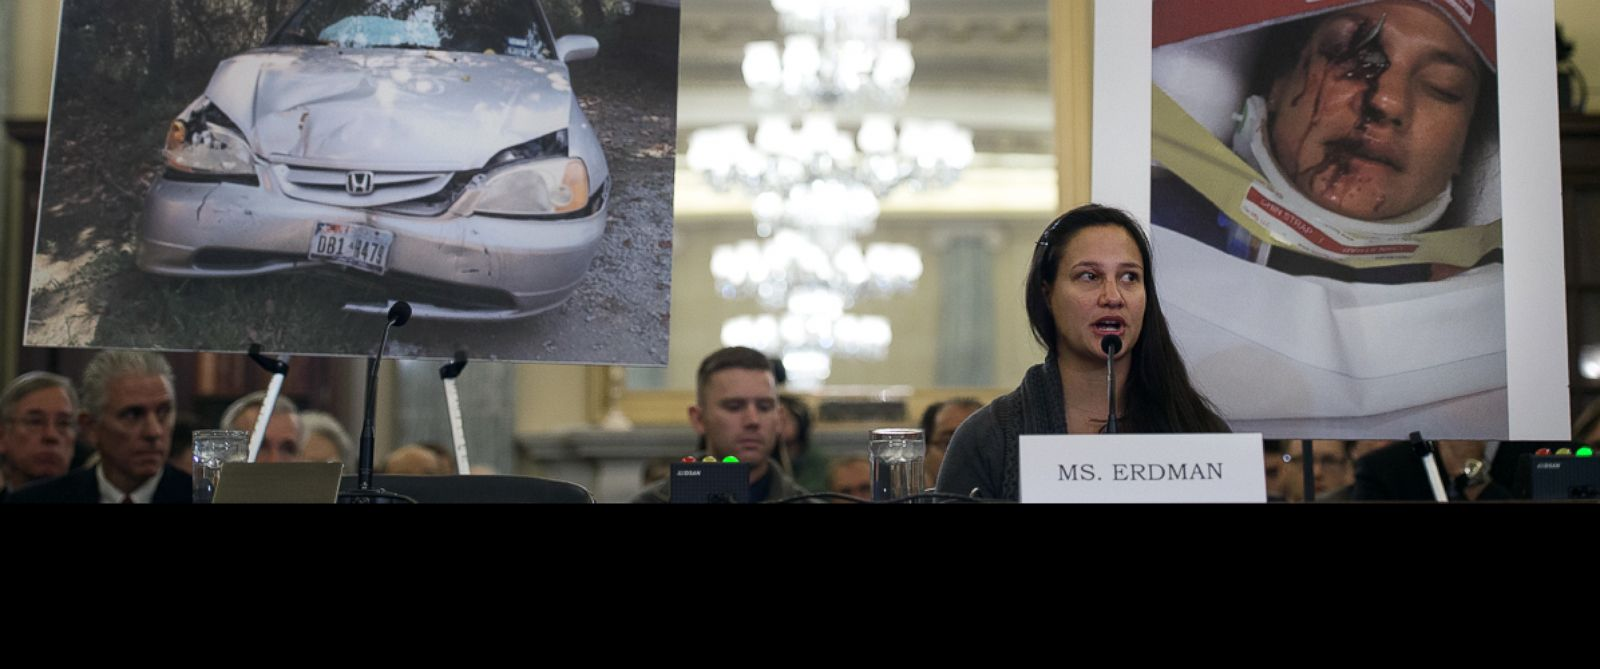 PHOTO: Air Force Lt. Stephanie Erdman testifies before the US Senate Committee on Commerce, Science, and Transportation on Capitol Hill in Washington, Nov. 20, 2014, on the Takata airbag defects and the vehicle recall process.